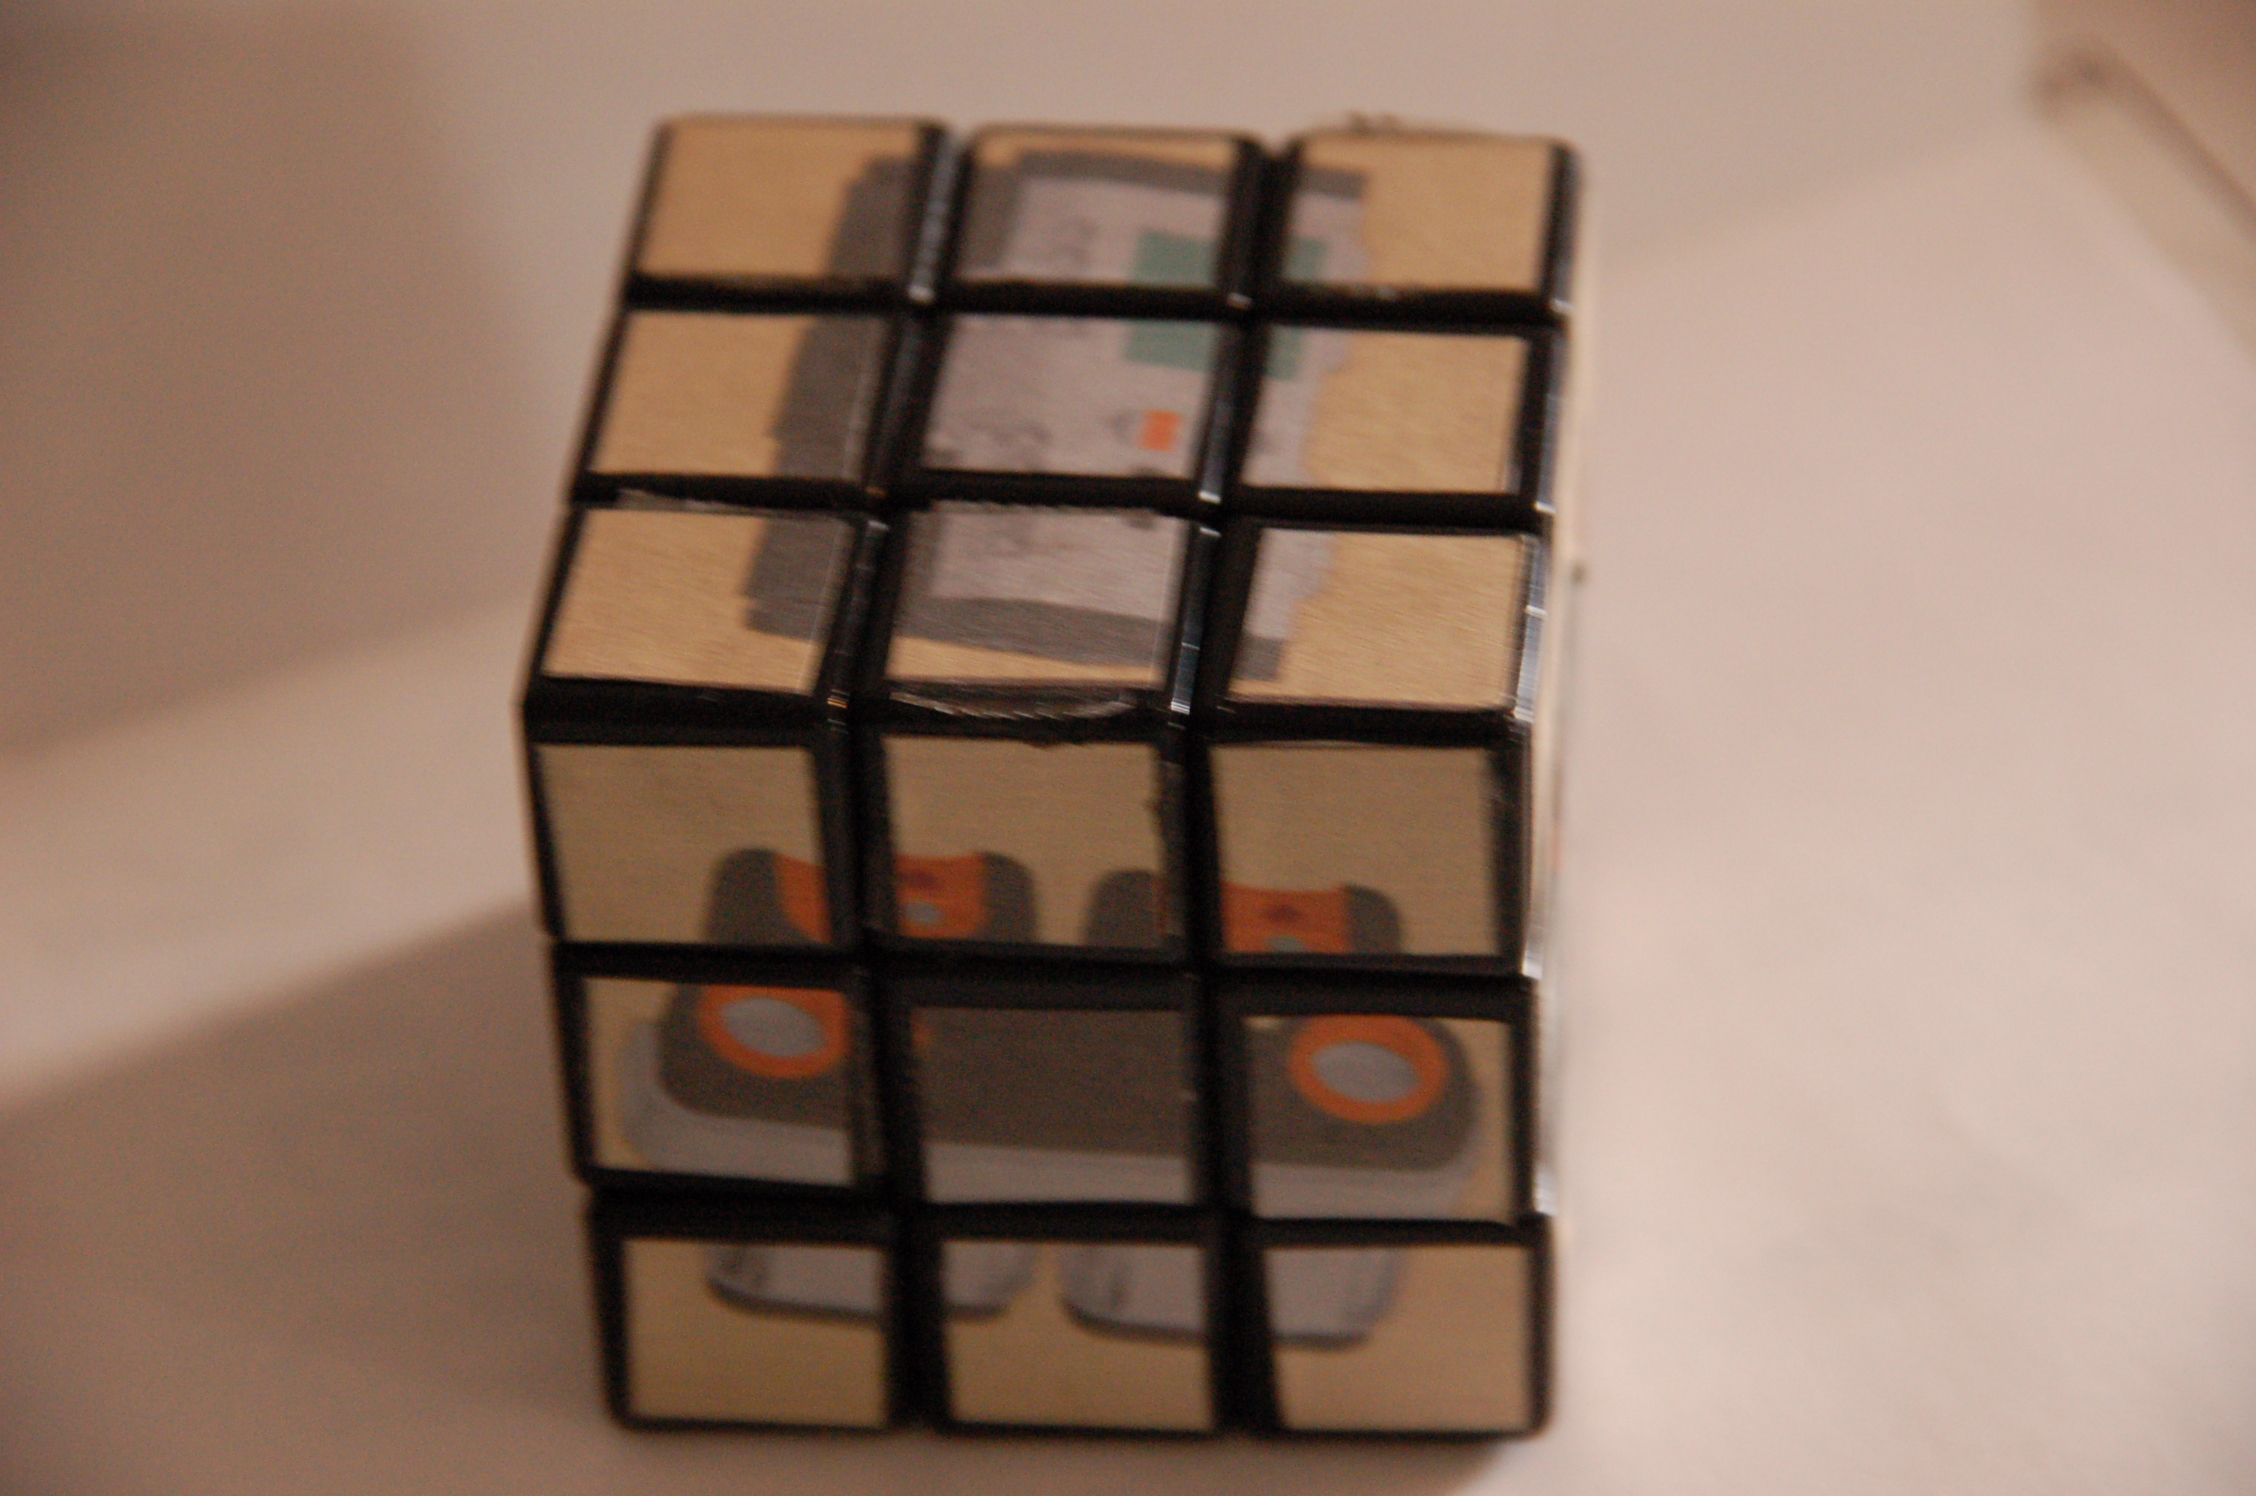 turn your lego projects in to a rubik's cube!!!